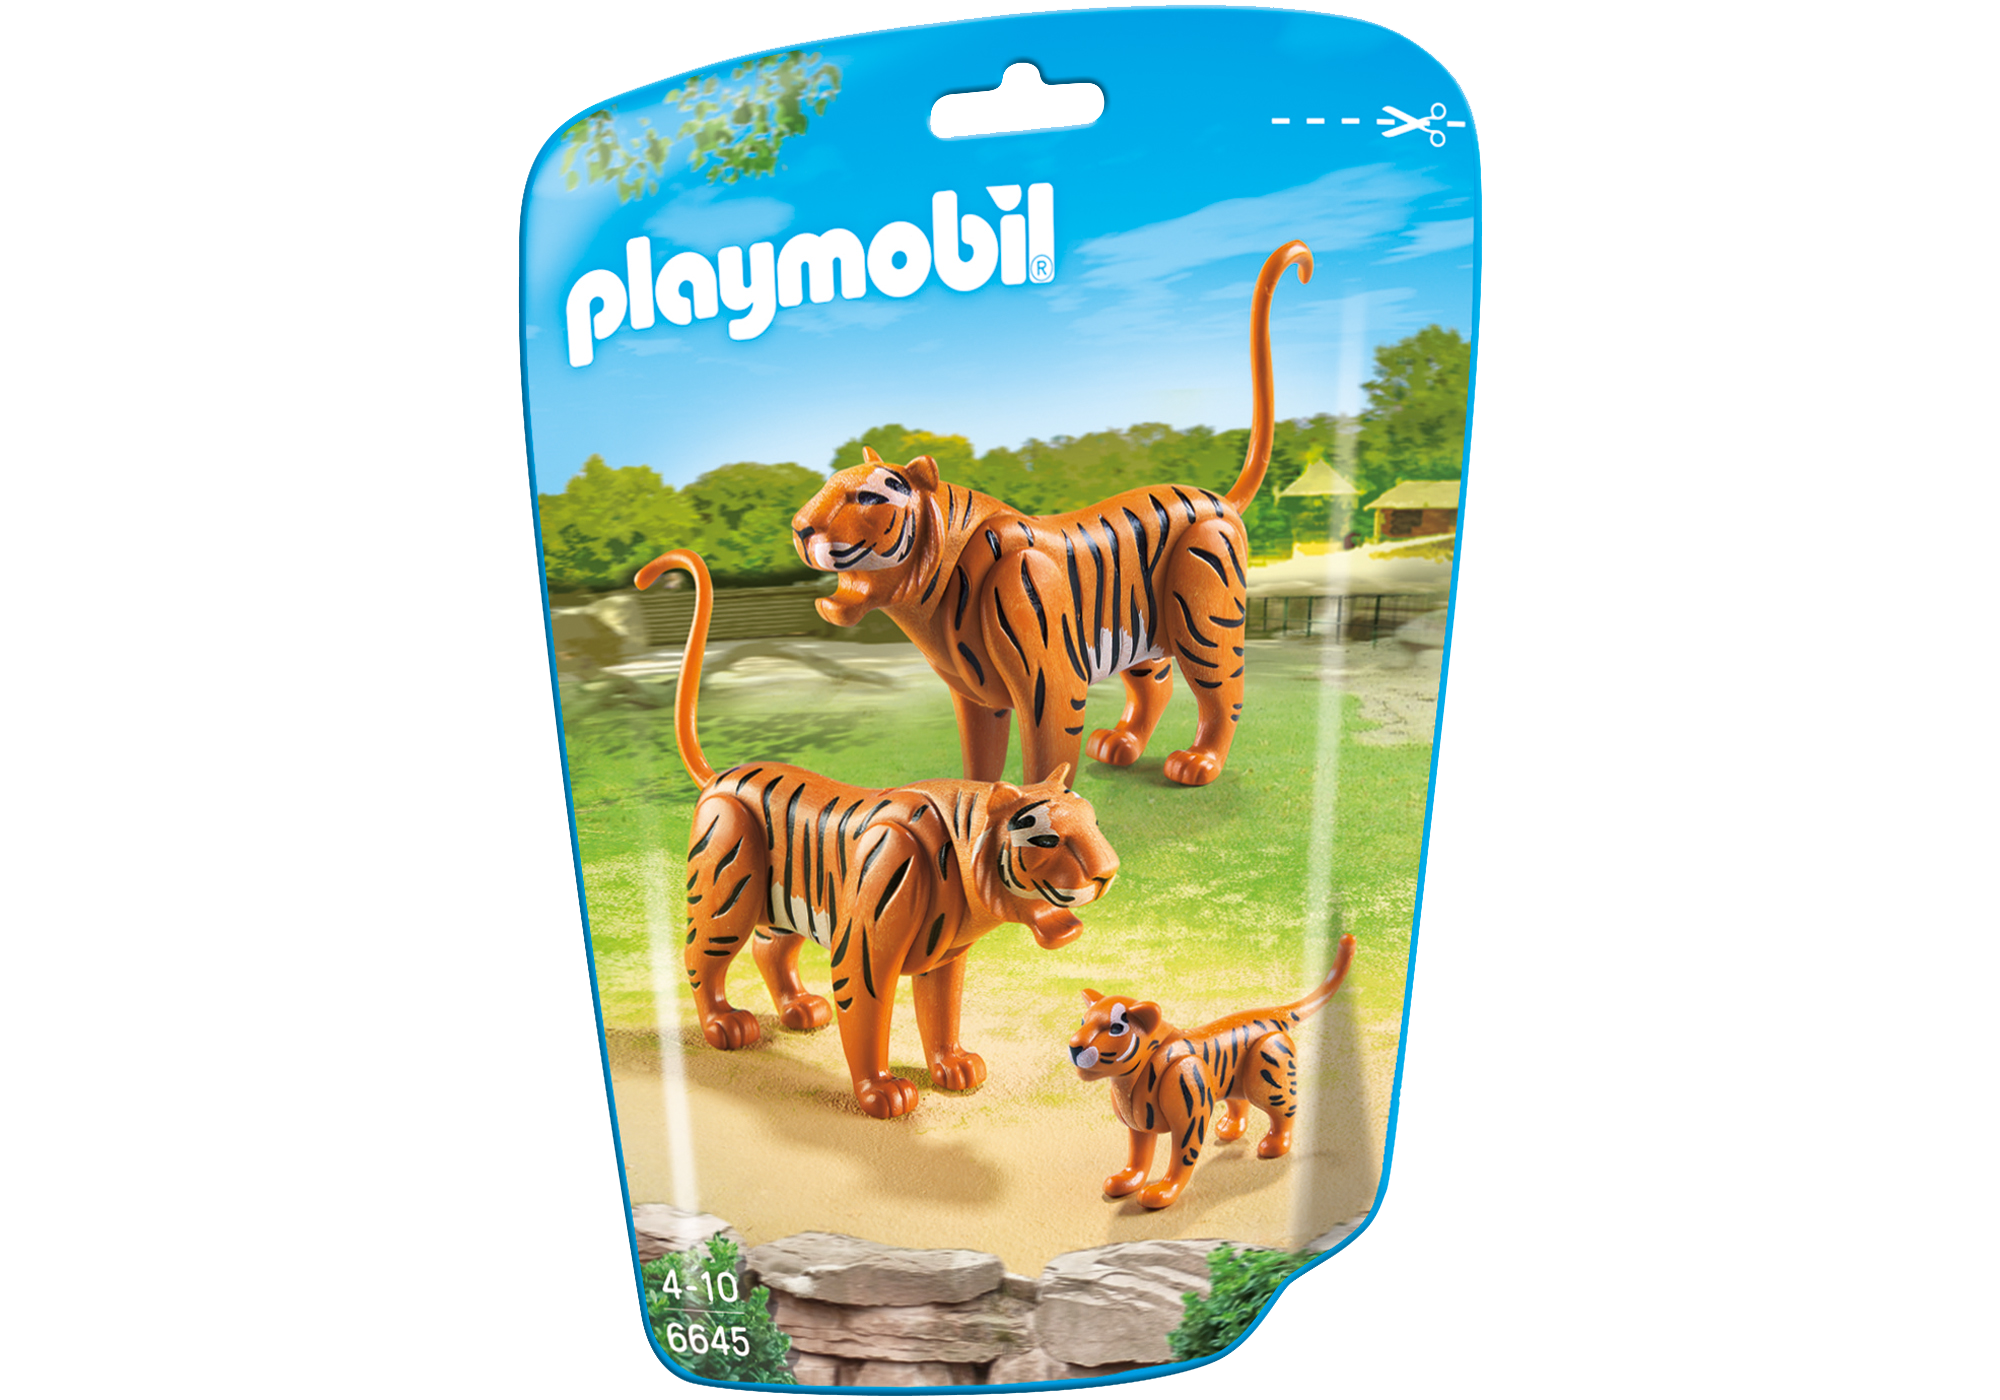 http://media.playmobil.com/i/playmobil/6645_product_box_front